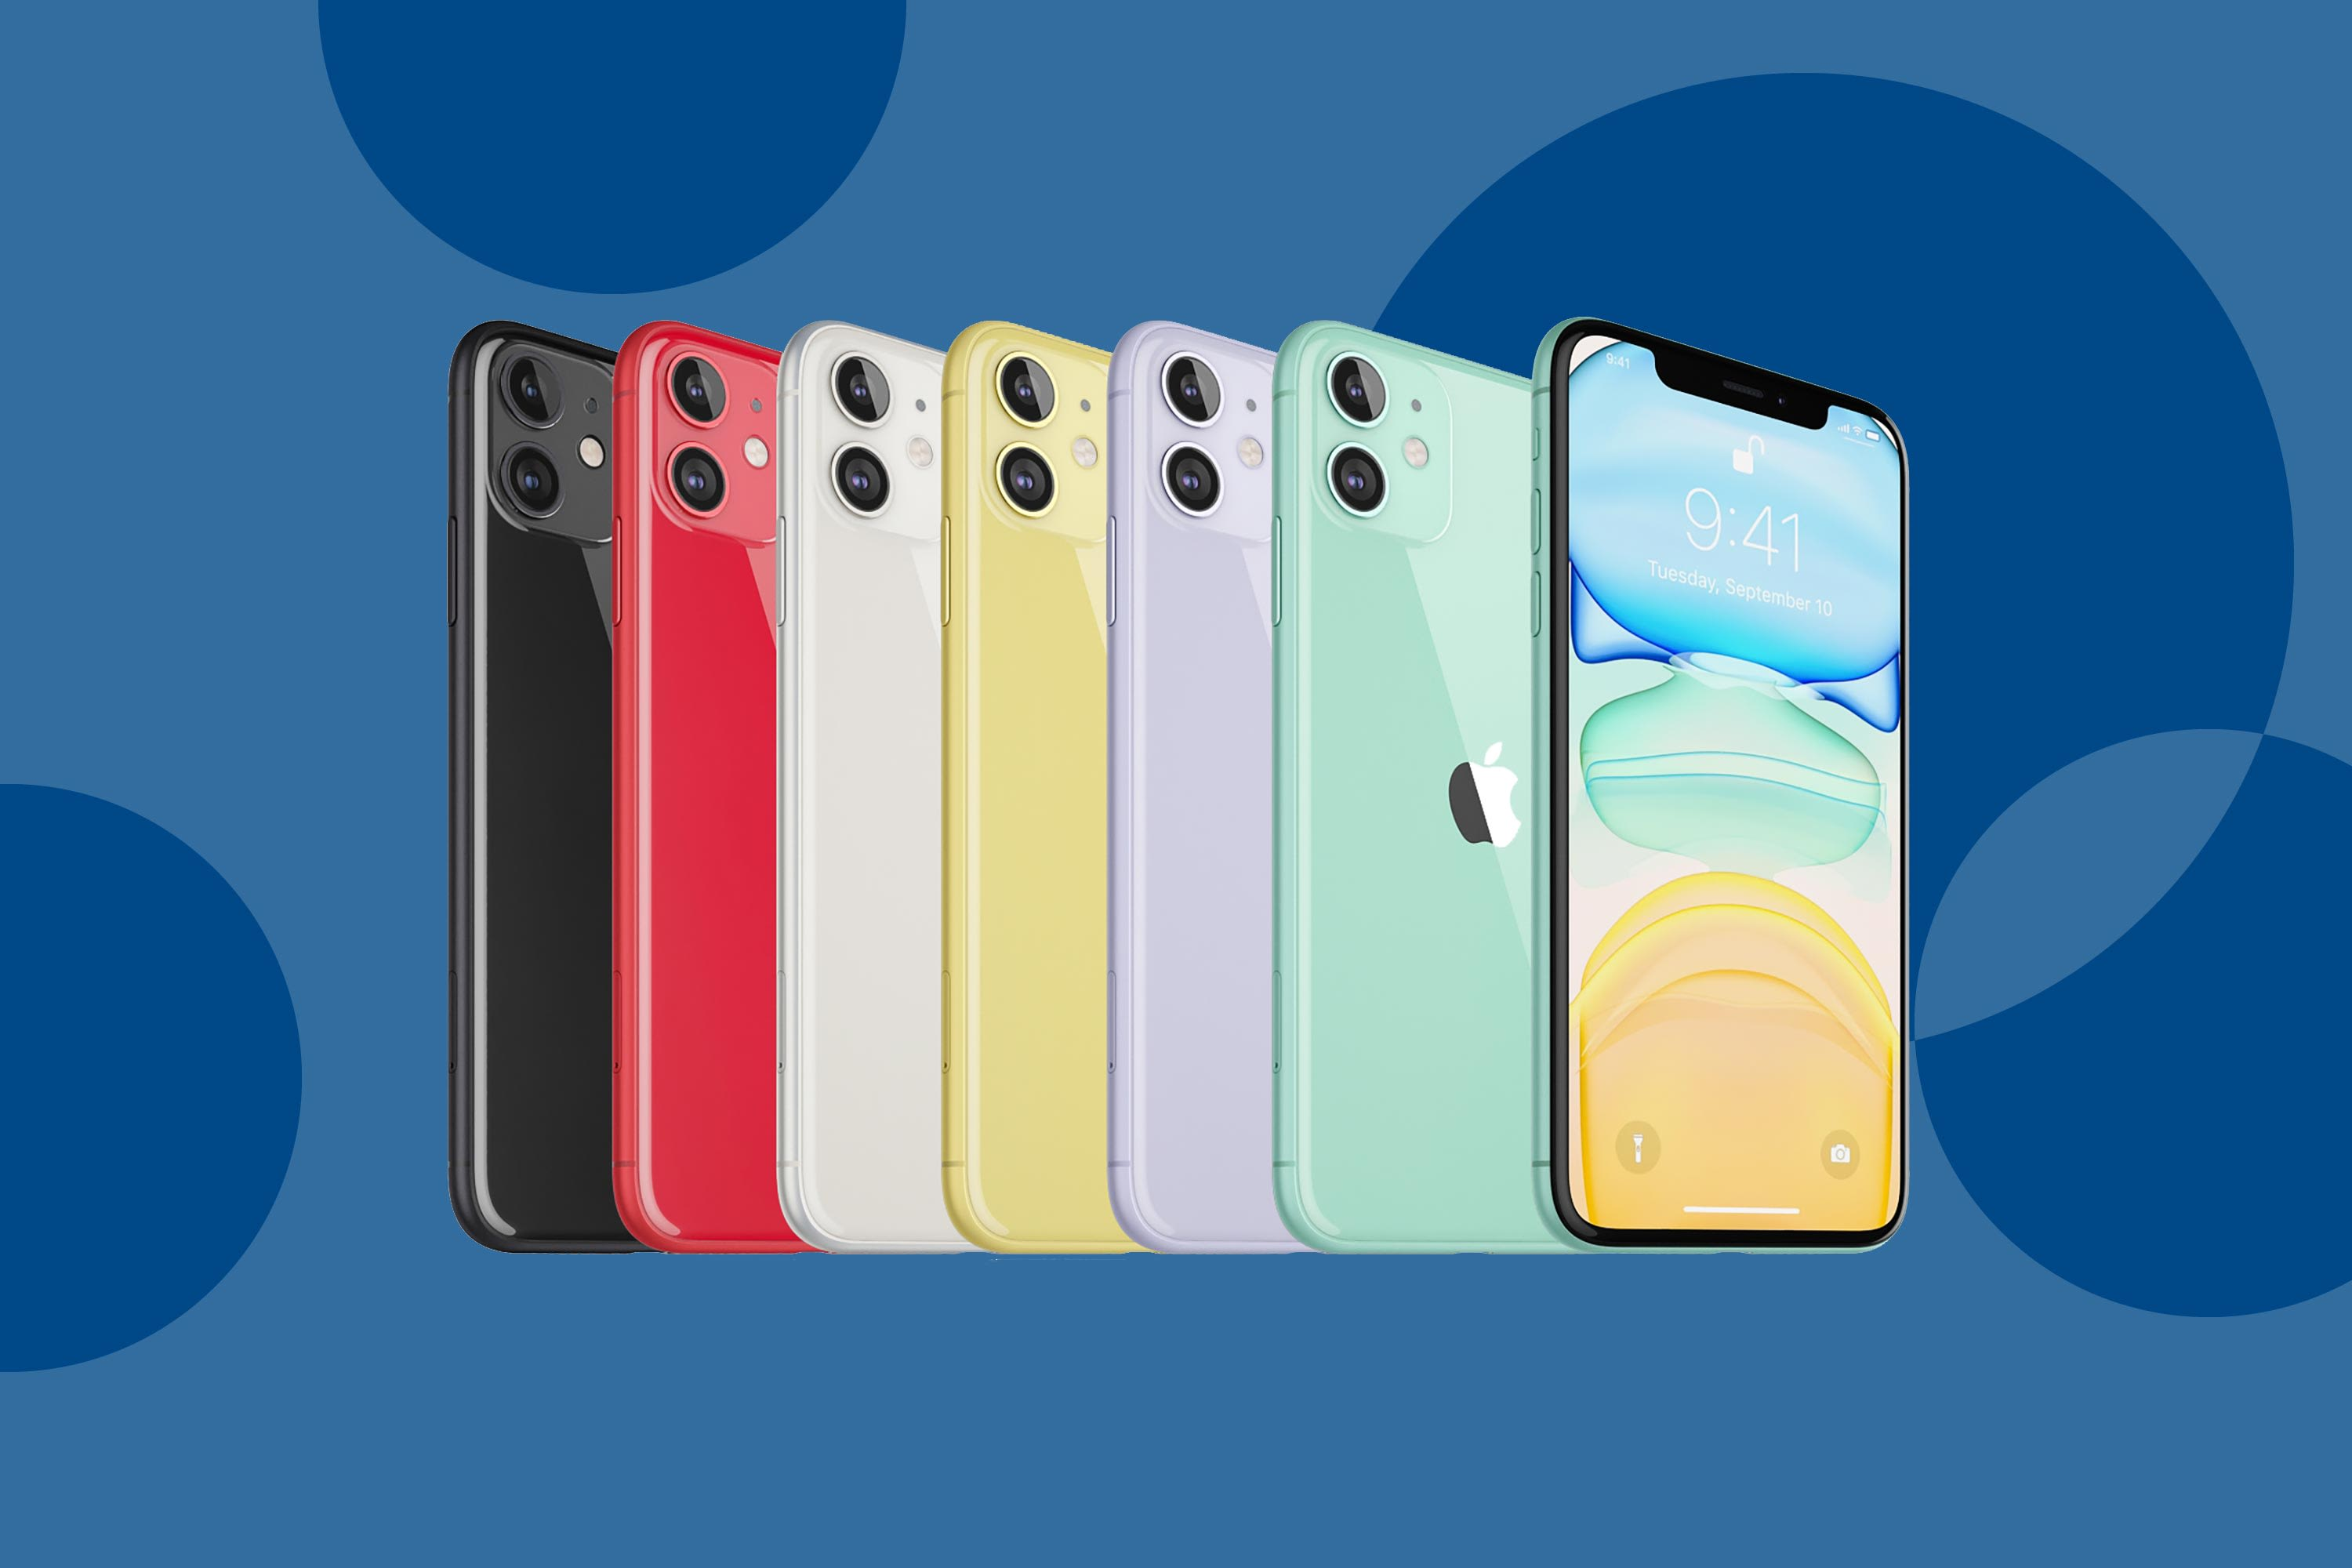 iphone-12-series-rumored-to-include-5-4-inch-iphone-12-mini-and-magnetic-wireless-charging-20200921-1